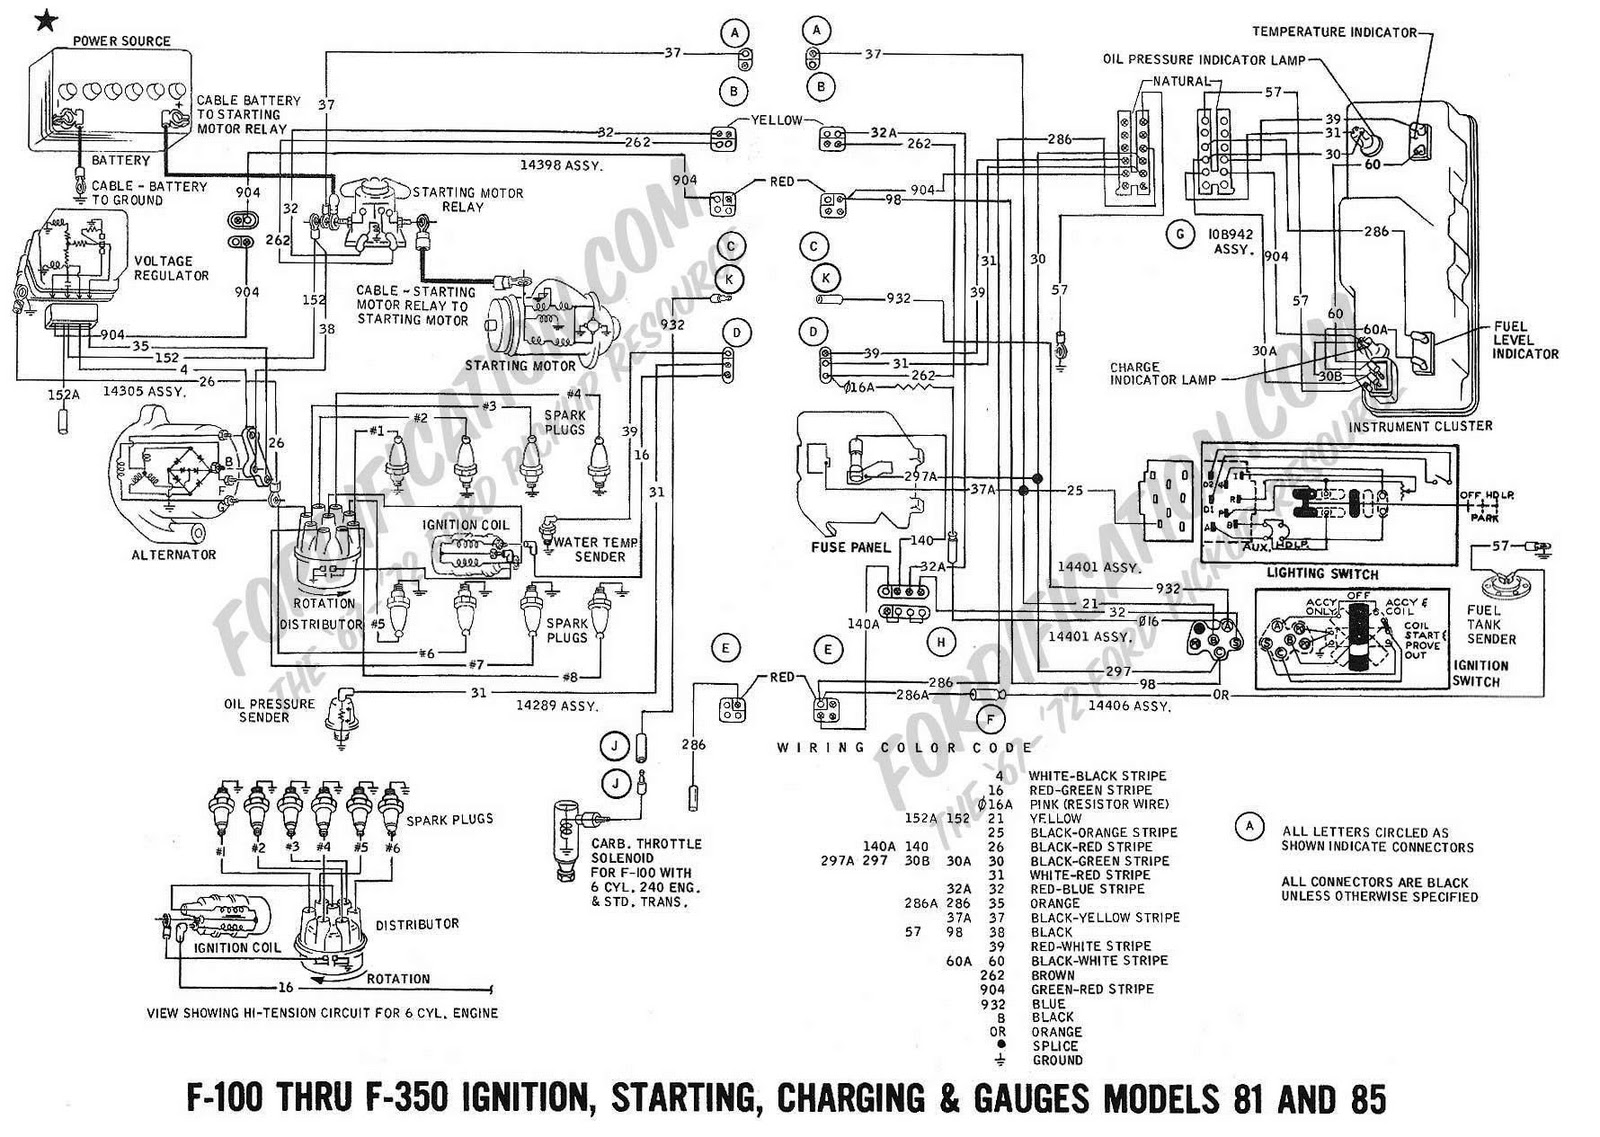 1964 ford falcon fuse box | wiring diagram 1964 ford falcon fuse box diagram #5